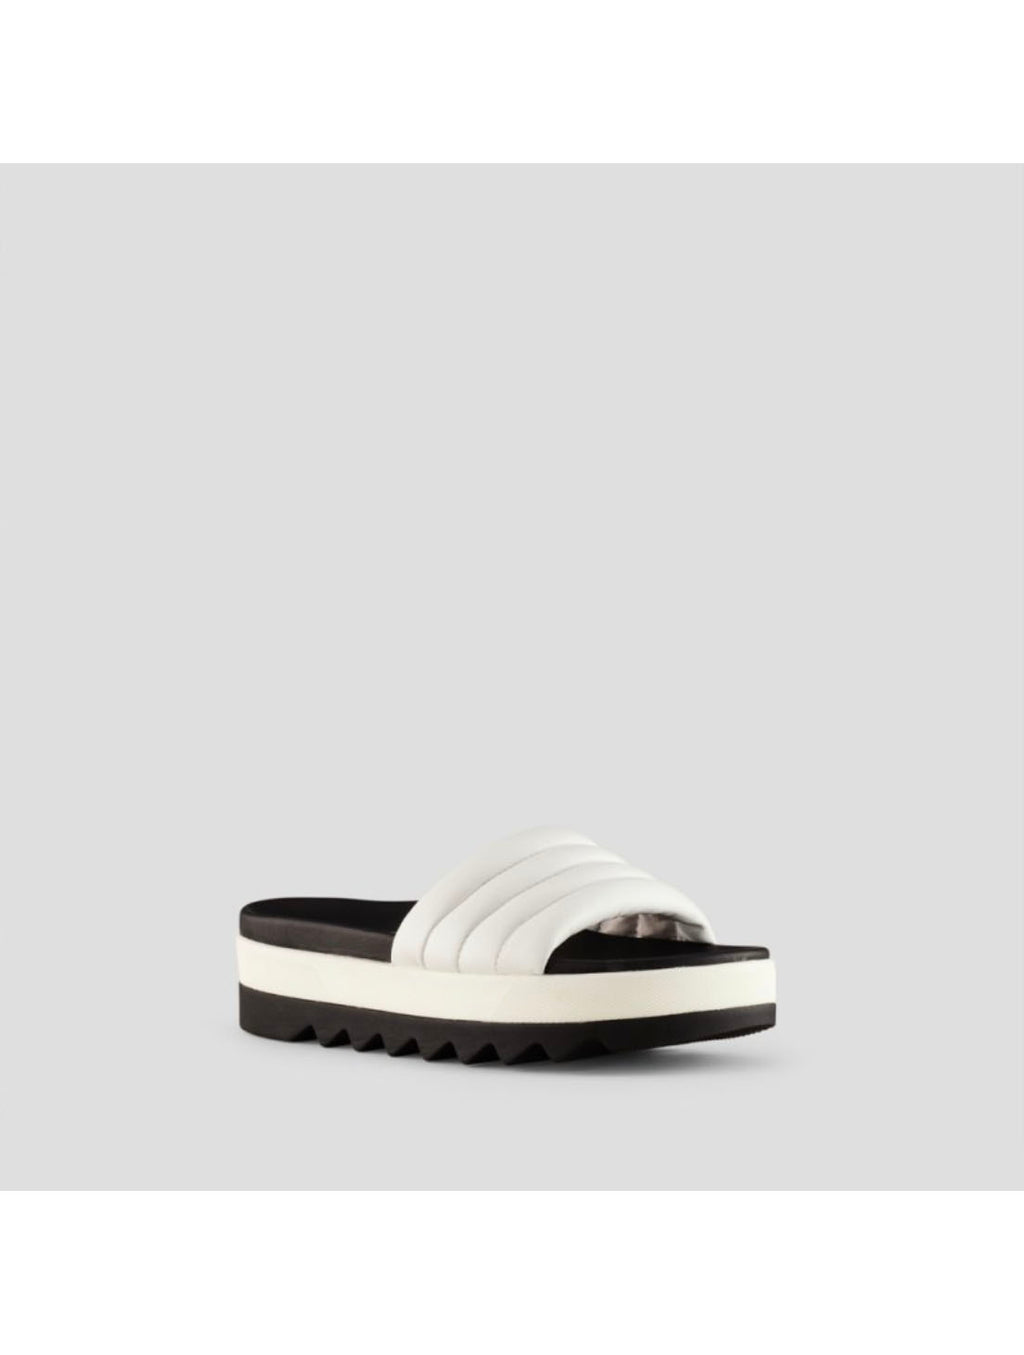 Cougar Prato Leather Sandal in White